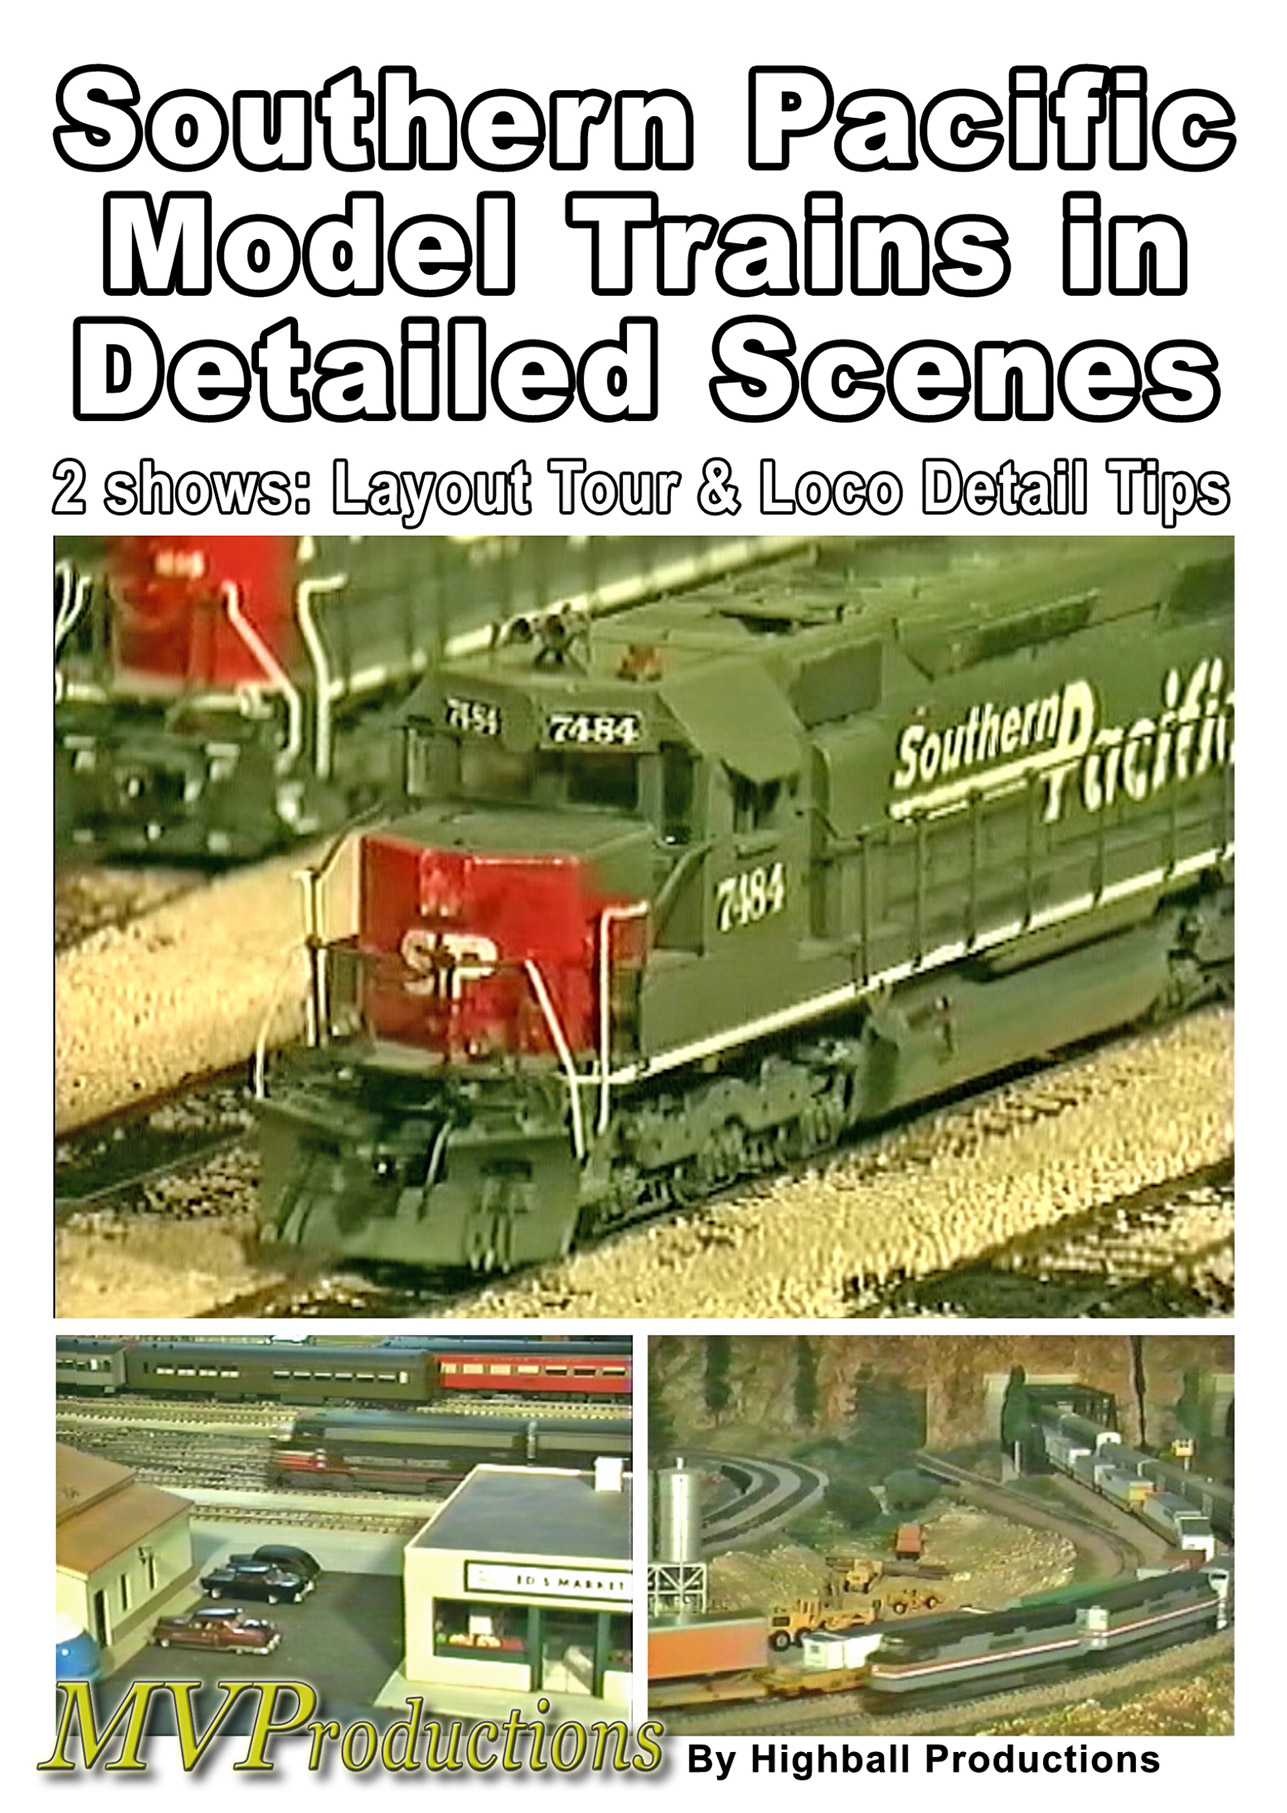 Southern Pacific Model Trains in Detailed Scenes Midwest Video Productions MVMRC 601577880059